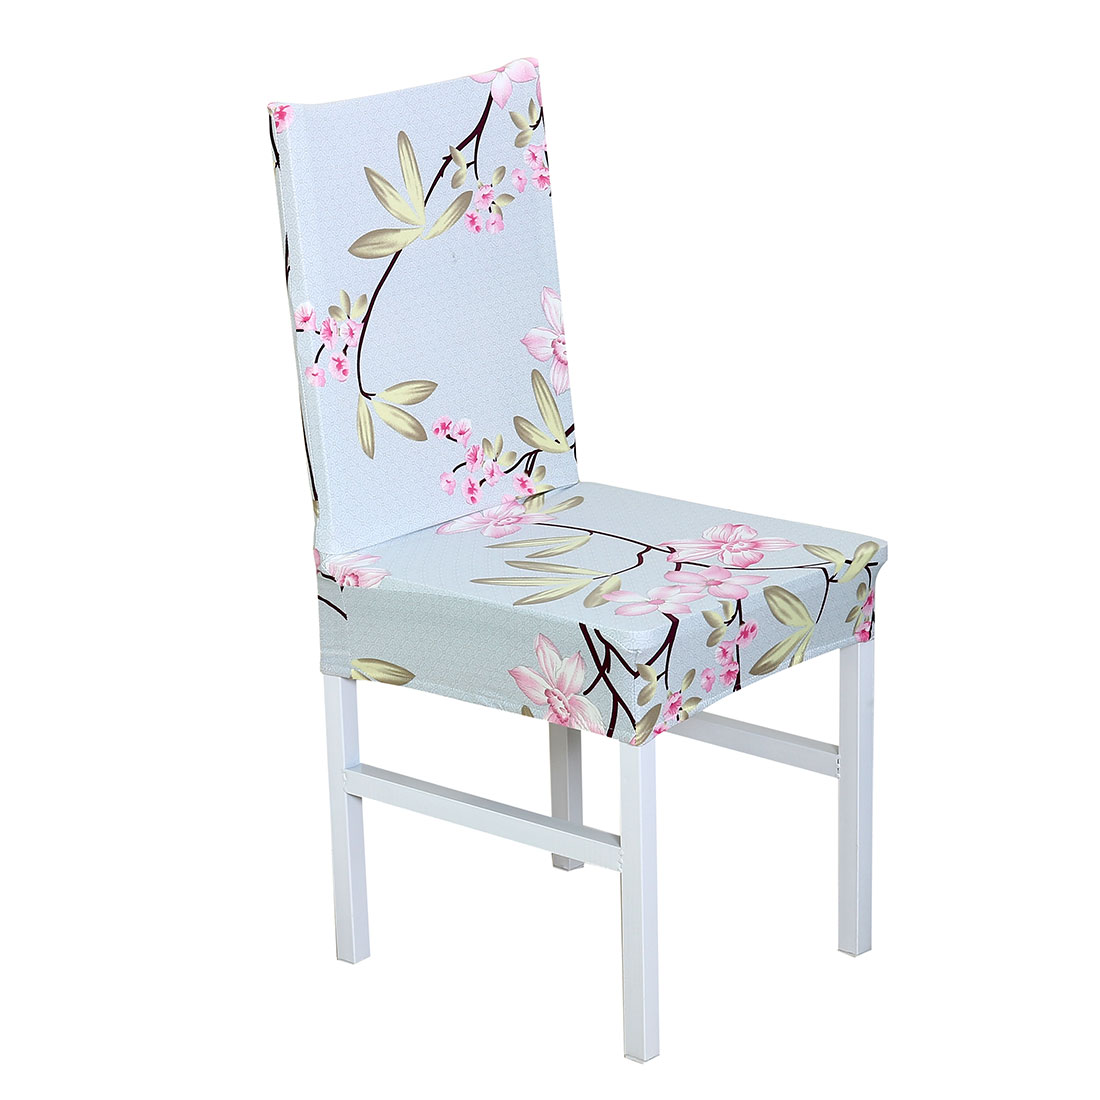 Removable Stretch Dining Chair Cover Protector Short Seat Slipcover for Wedding Hotel Banquet Home, #26